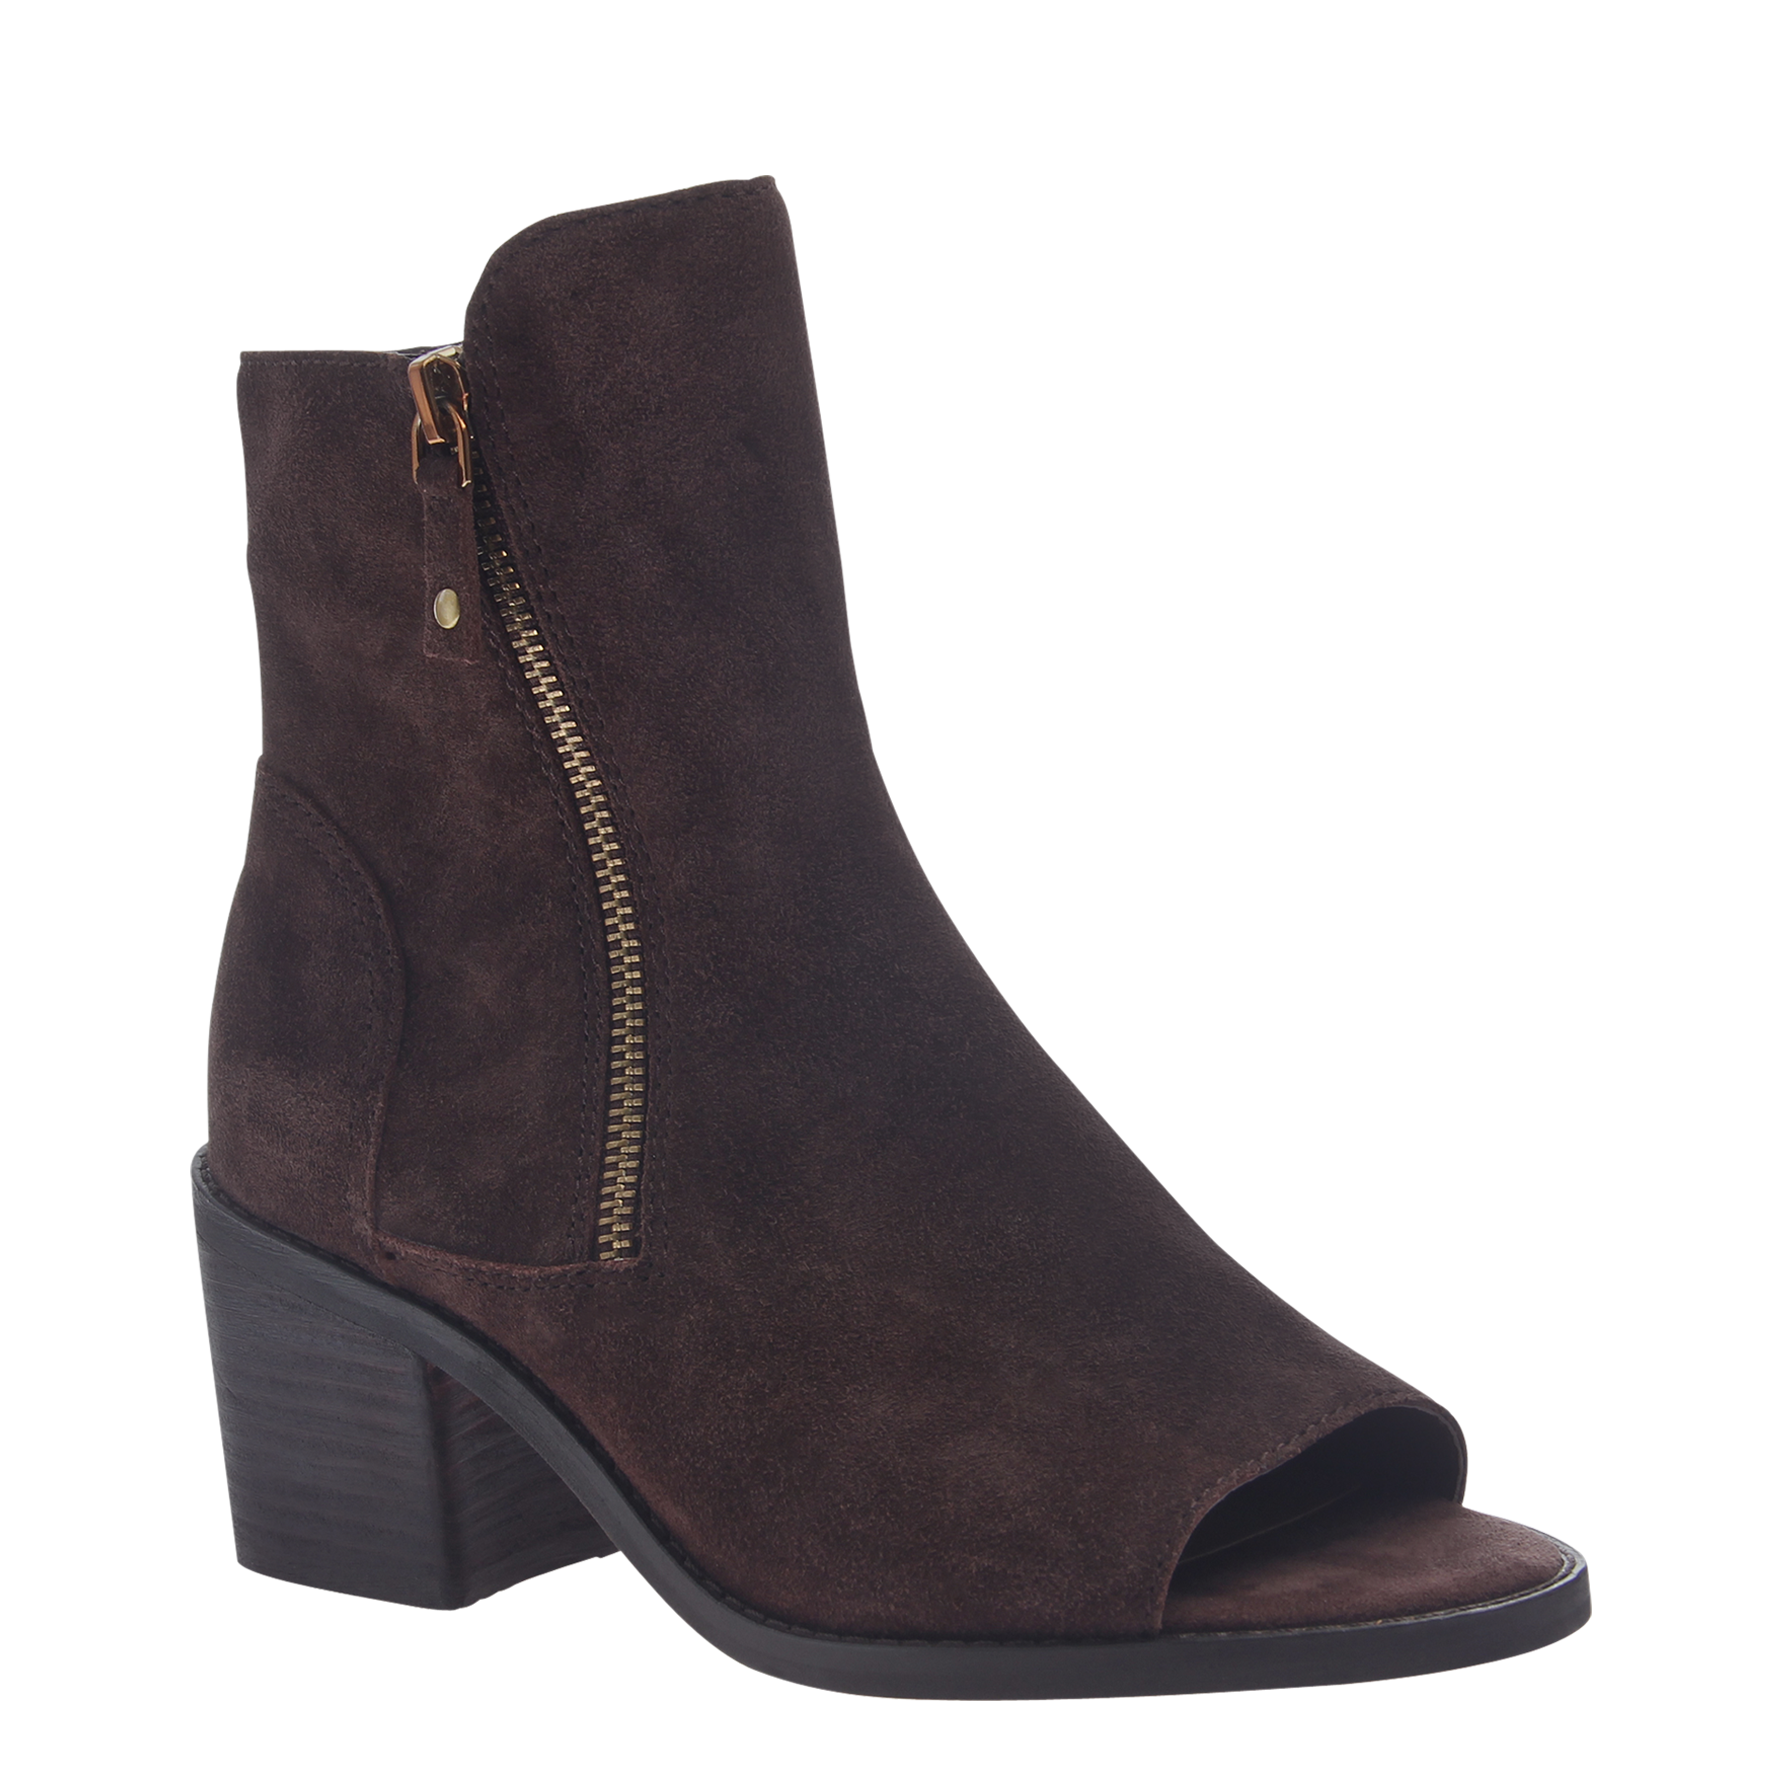 Womens open toe booties Nina in dark brown